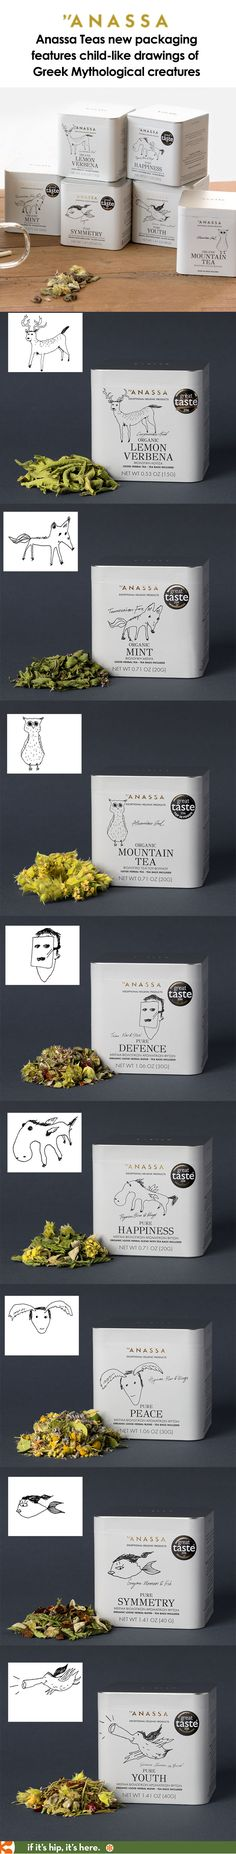 Anassa's new packaging for their teas features scribbled little Greek mythological characters.